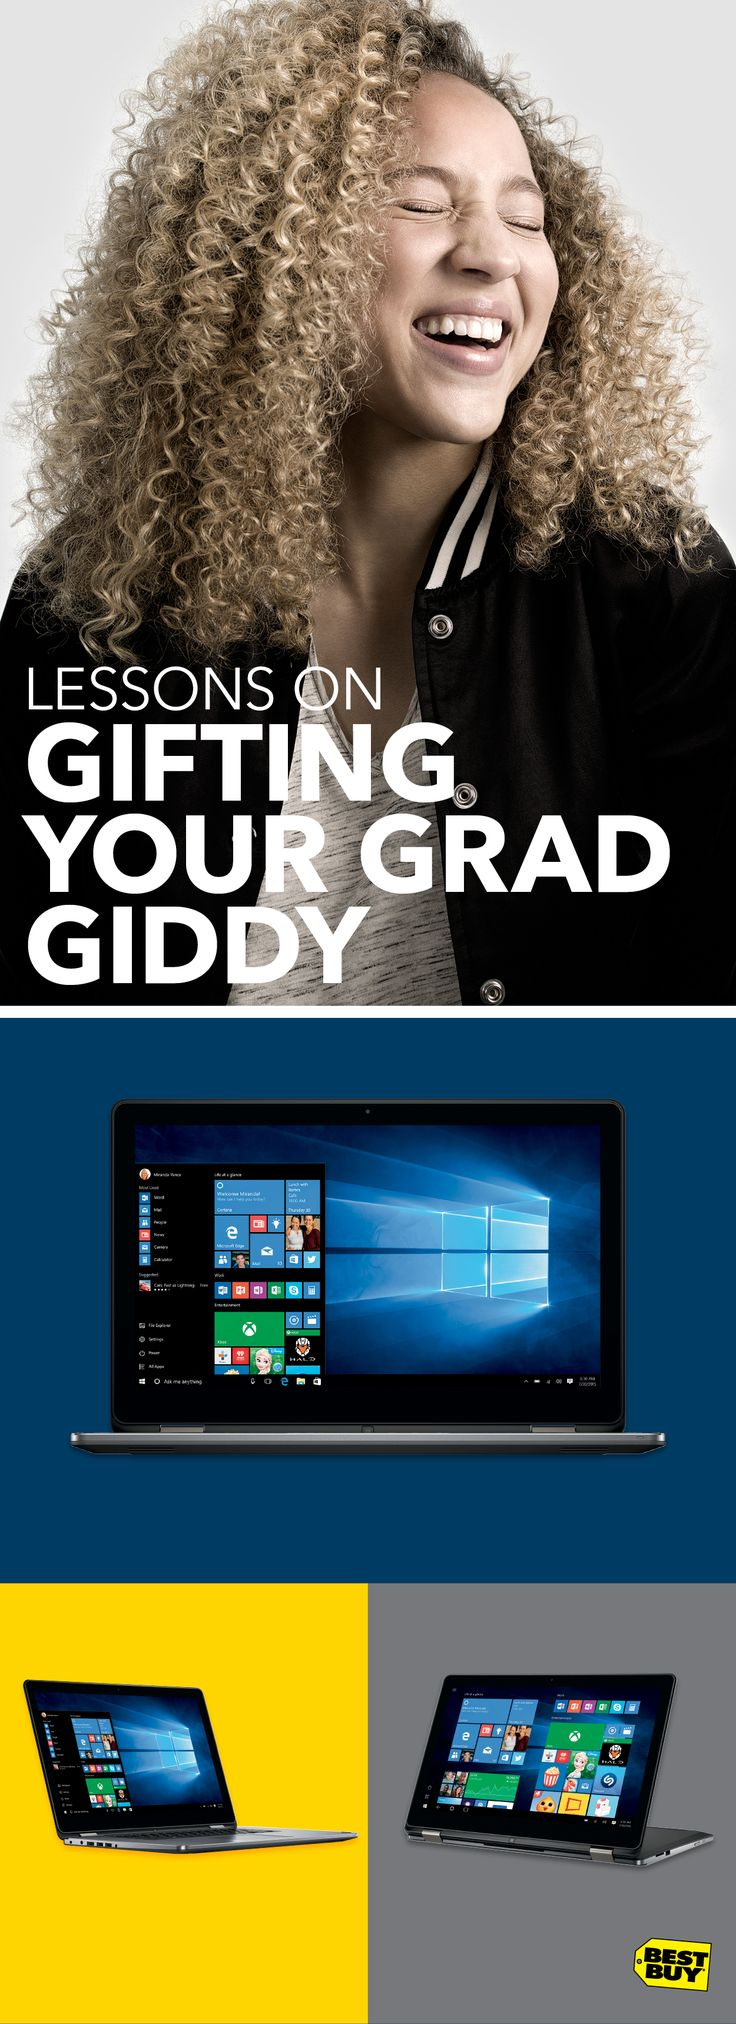 So you've gotten your child through school. Now you need to get them through life. But where to start? How about with a graduation gift that gets them excited and keeps them prepared. Windows 10 is built for productivity and capability. And if versatility is high on their want list, brands are introducing 2-in-1s more powerful than they've ever been. Let's look at the best in laptops...